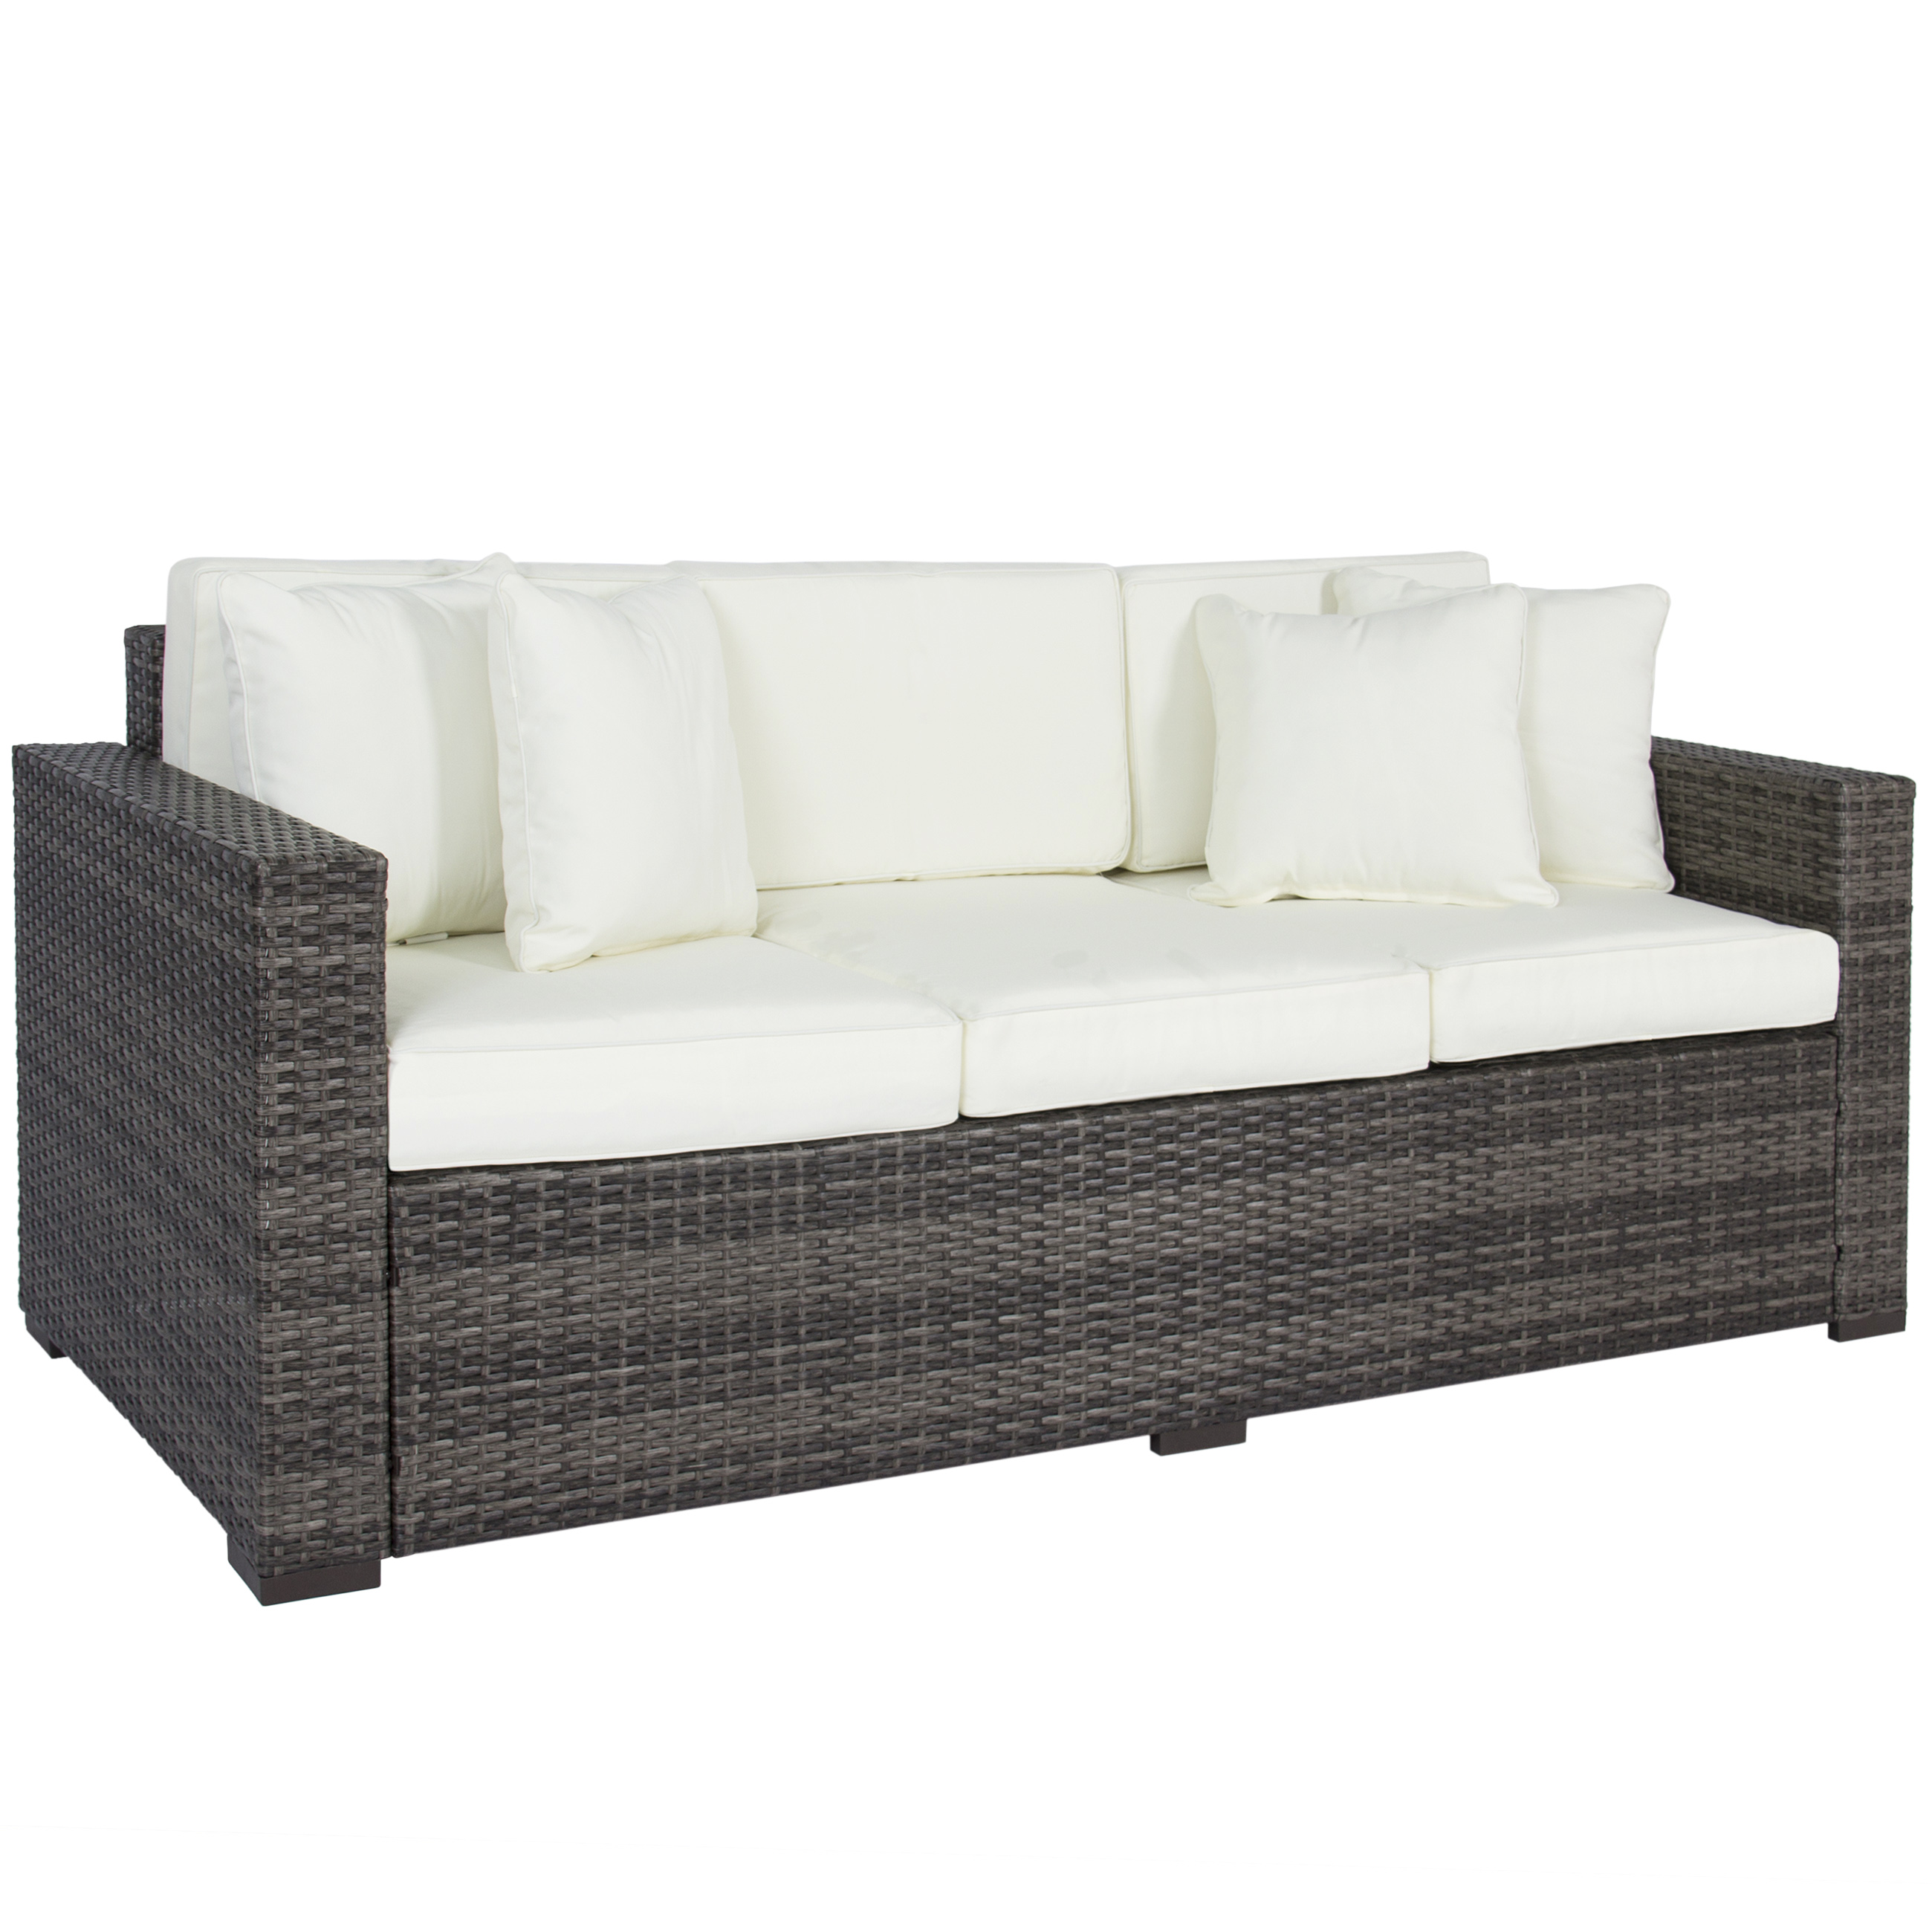 outdoor couch best choice products 3-seat outdoor wicker sofa couch patio furniture w/ ATXEGQX